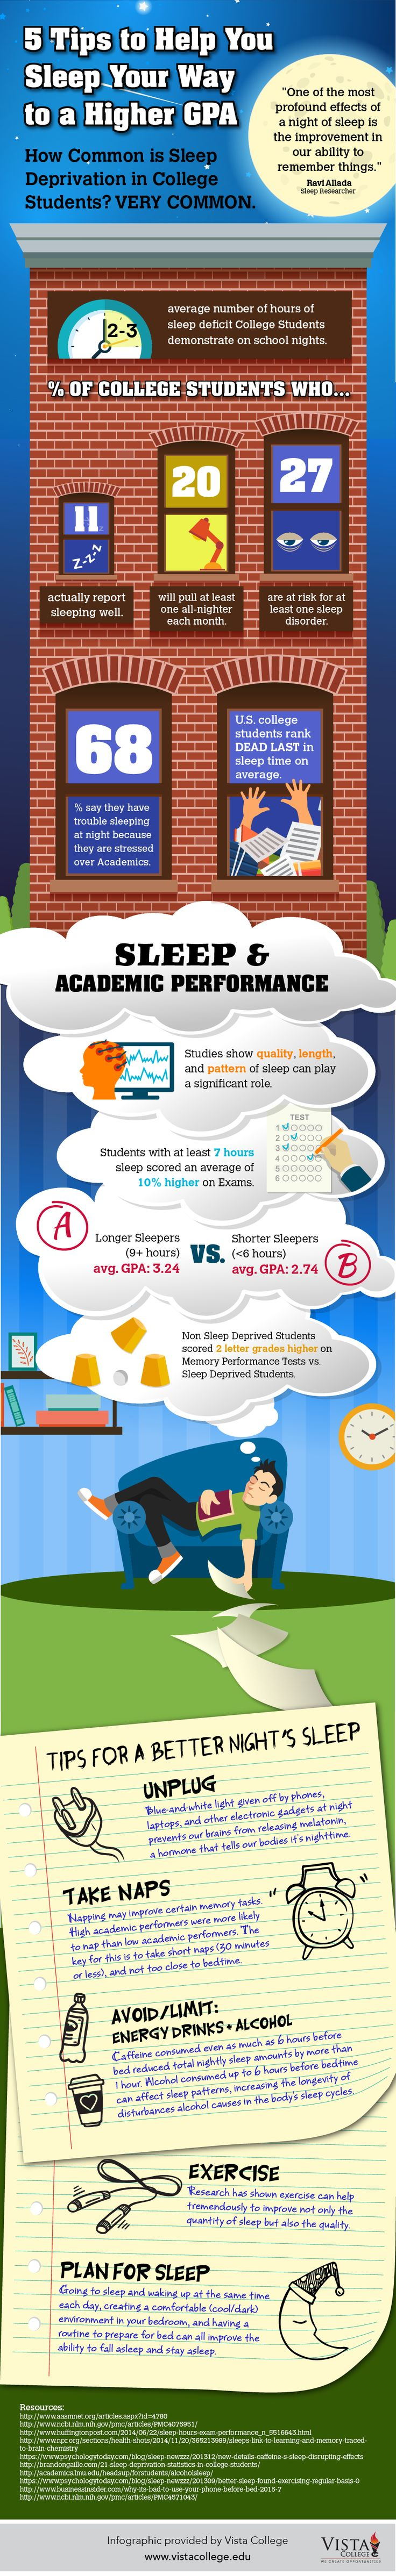 How to Sleep Better and Improve Academic Performance